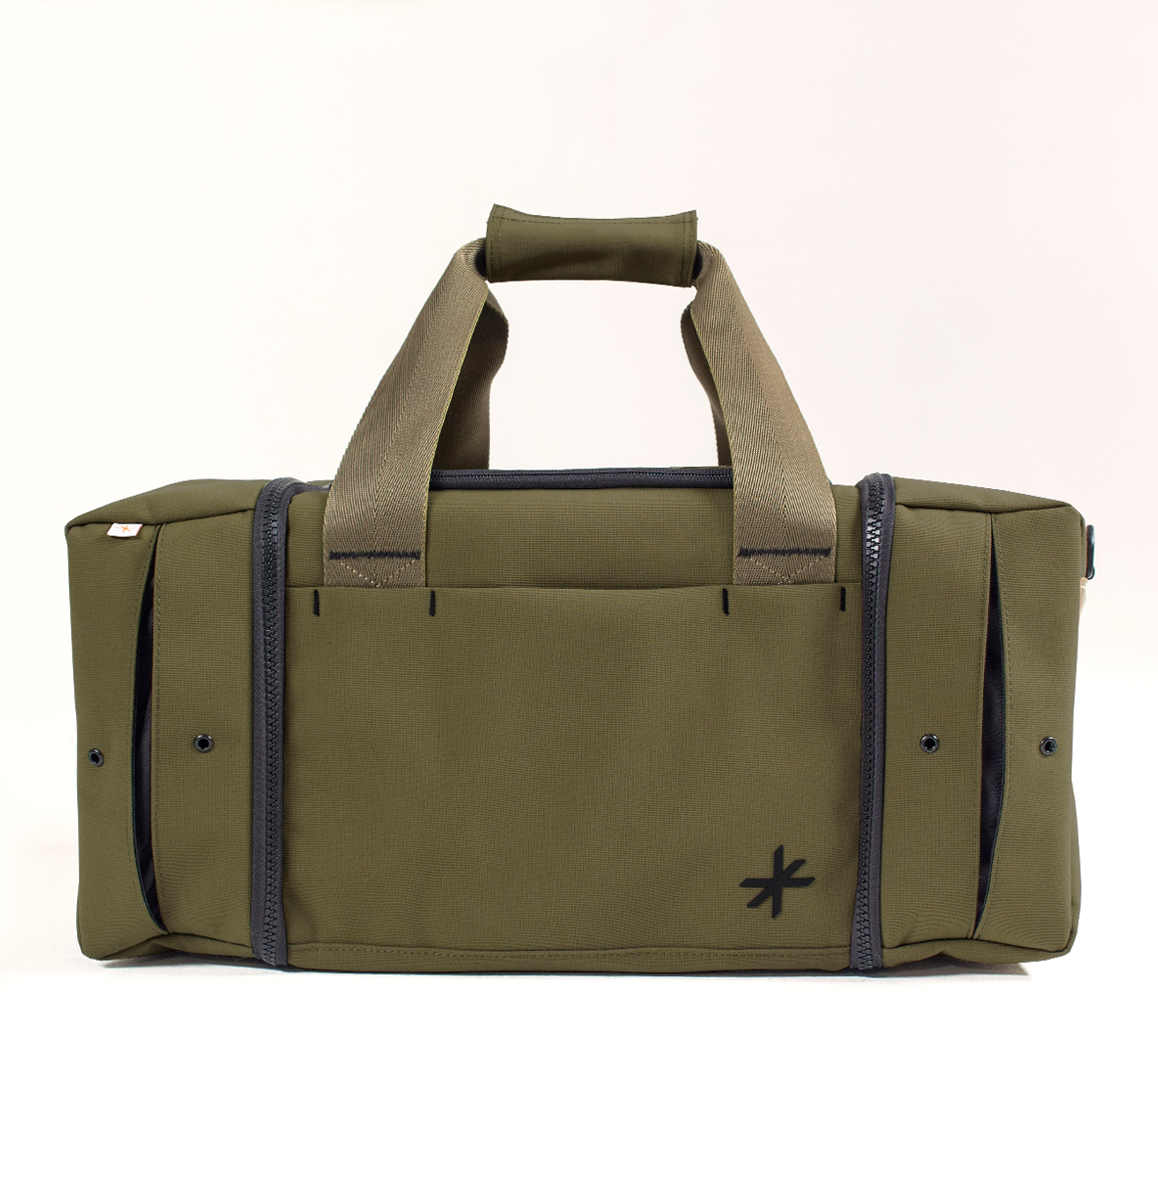 The Shrine 『SNEAKER DUFFEL』 color : OLIVE